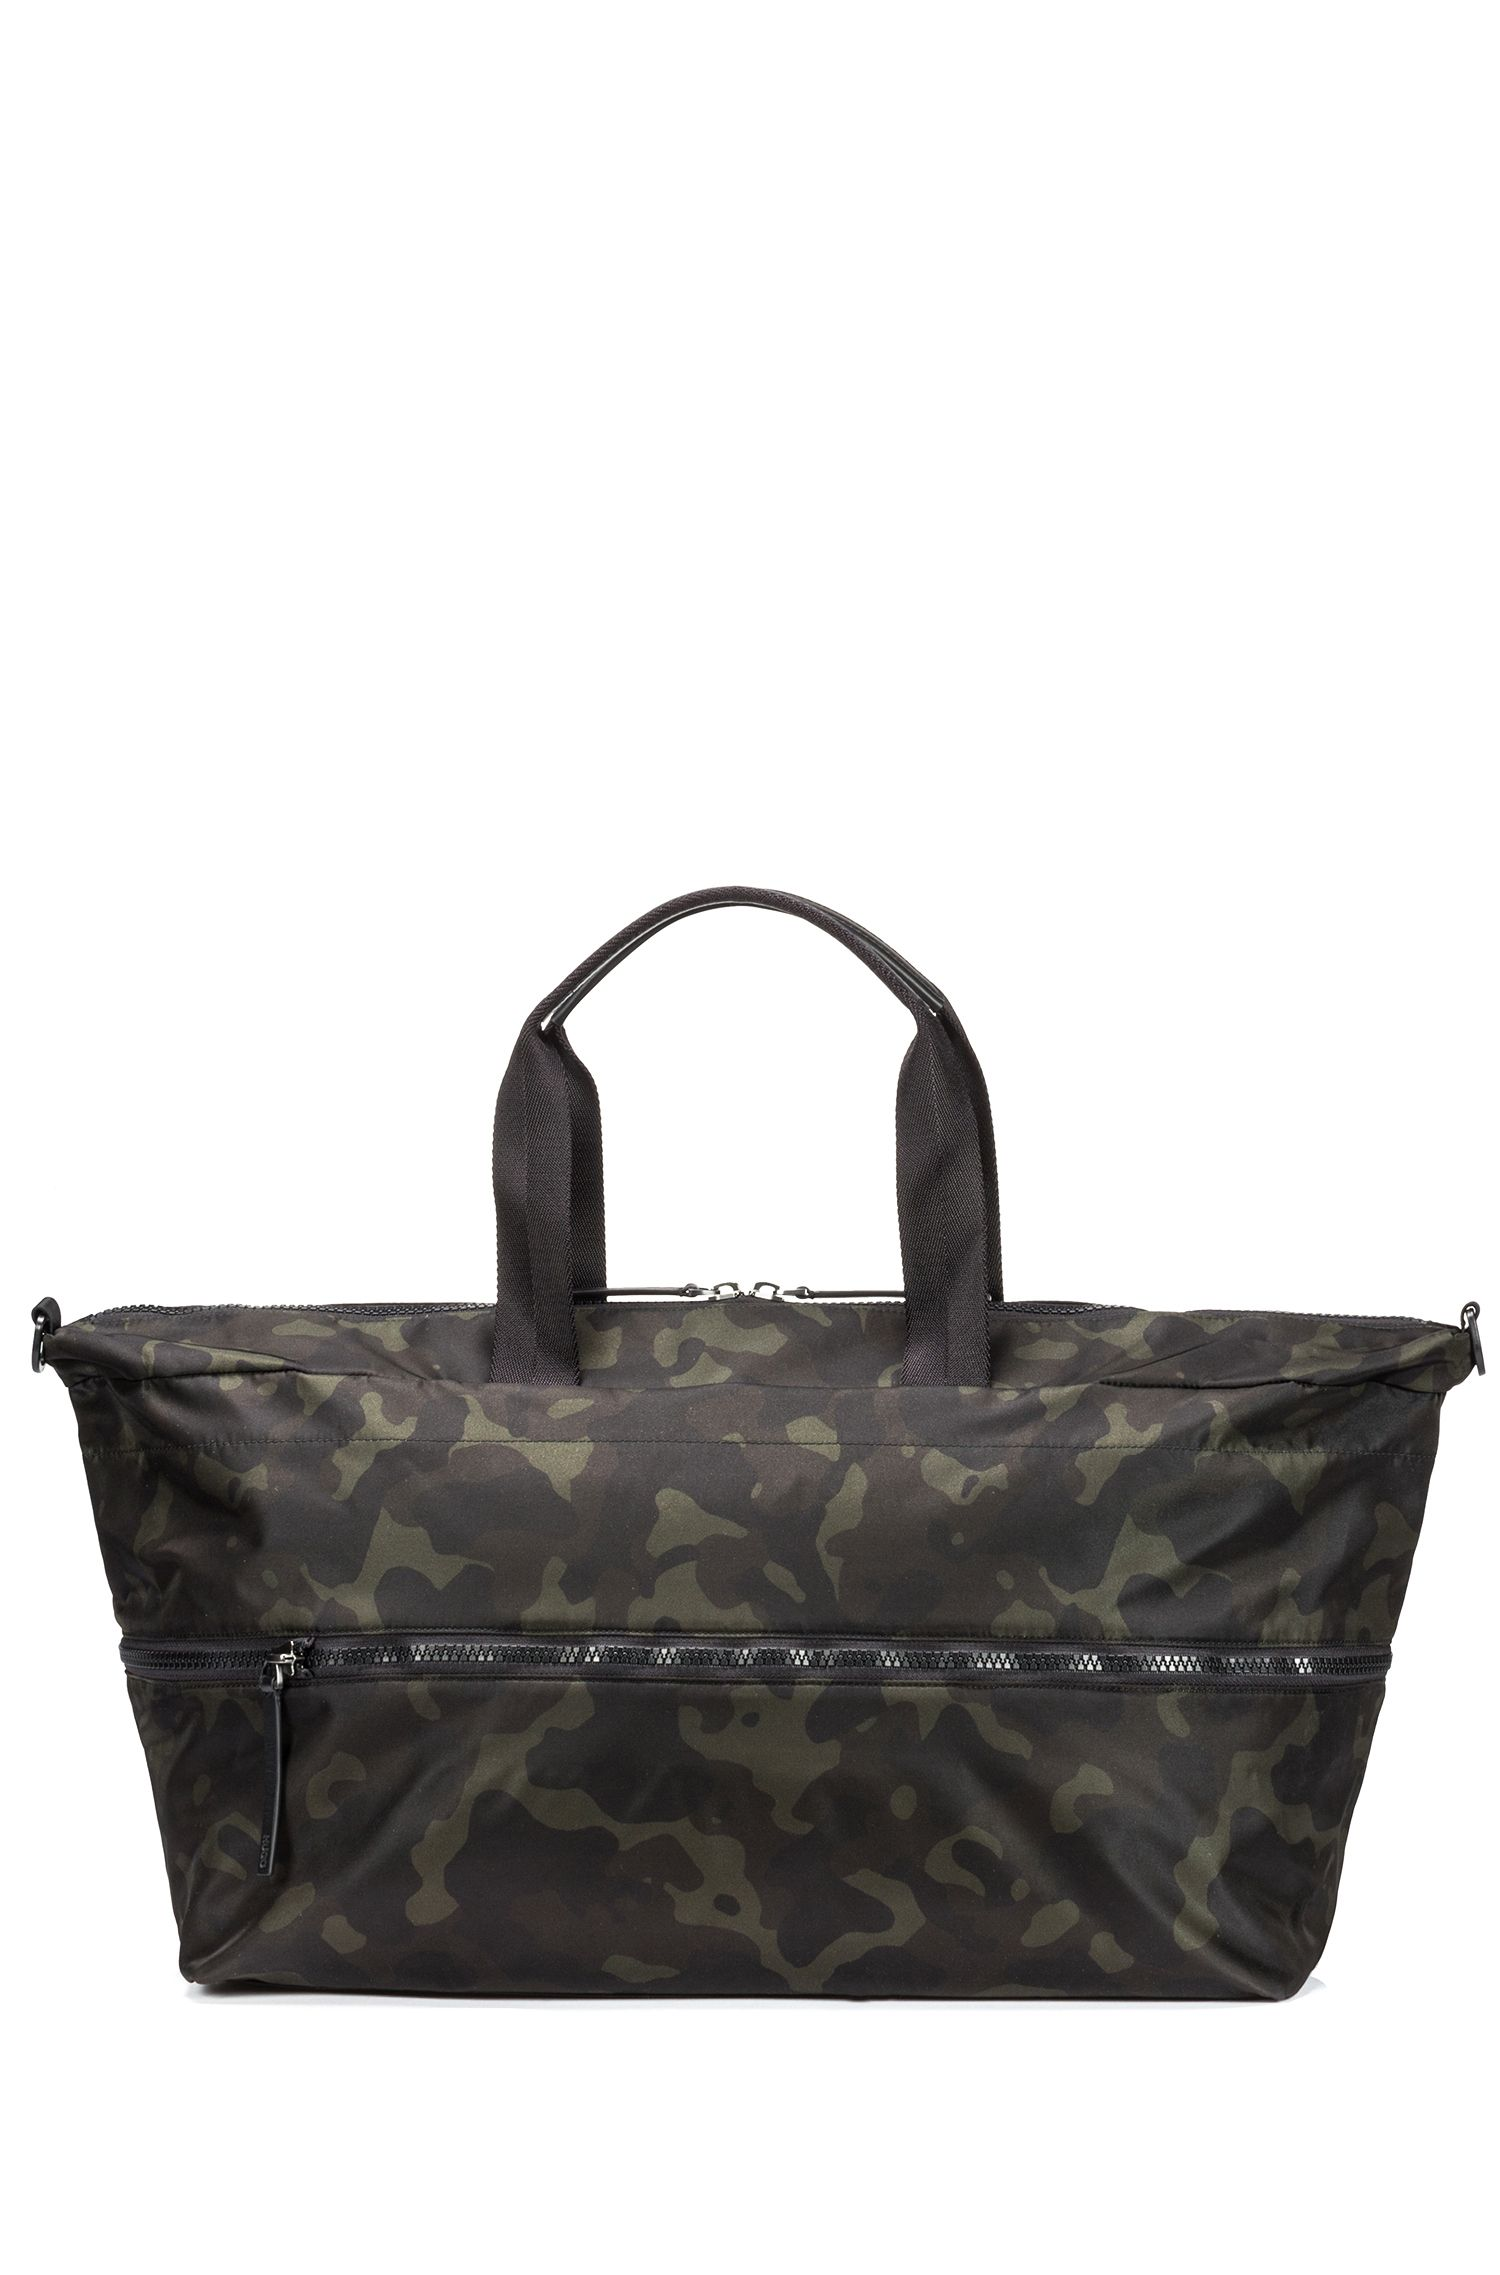 Expandable camouflage-print holdall in nylon gabardine, Patterned